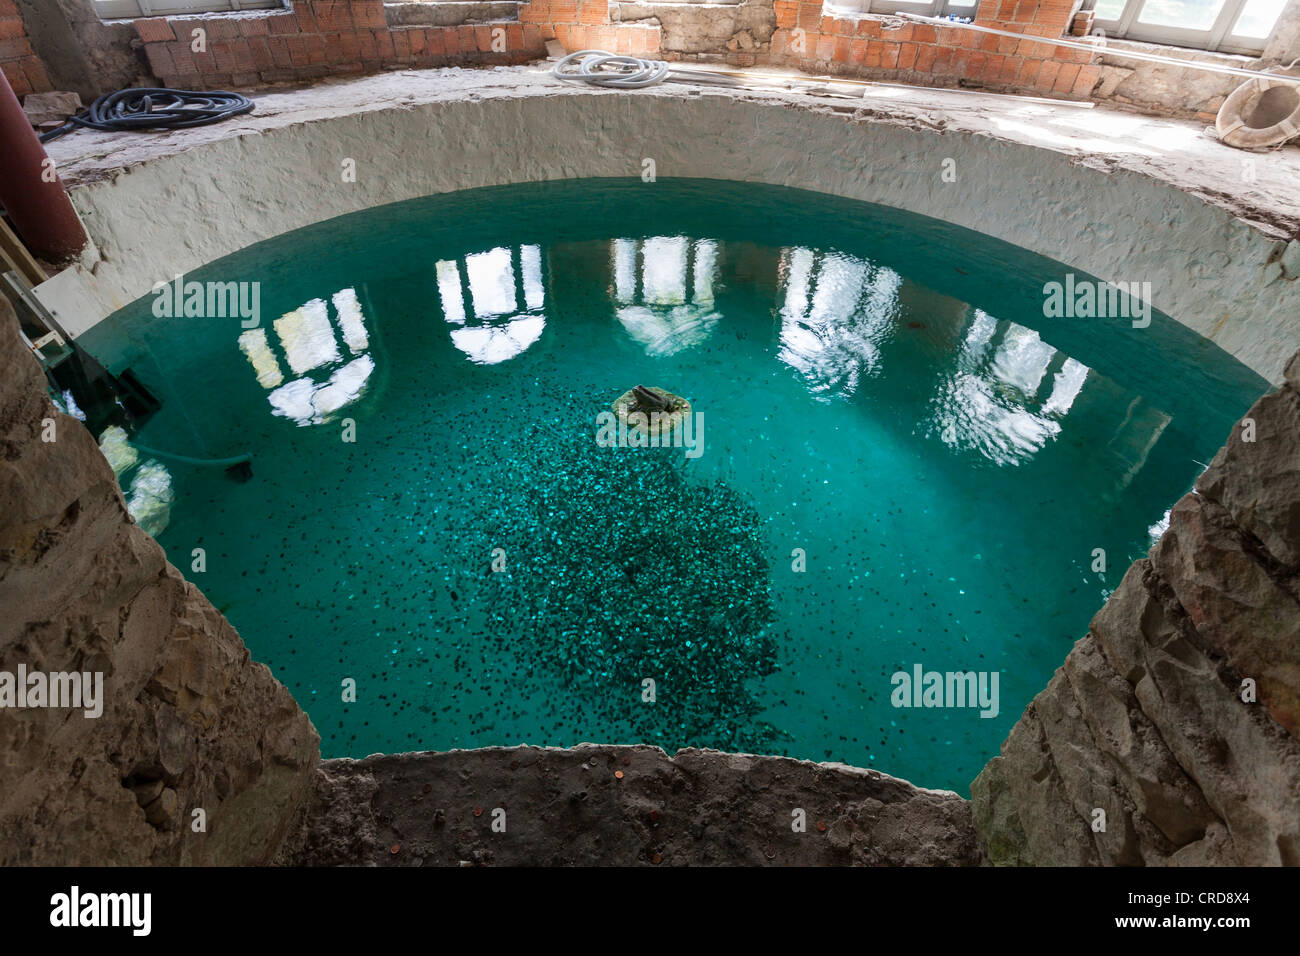 Pool, tossed coins, and a frog, A frog sculpture floats in a partially restored pool in Boldt Castle. - Stock Image